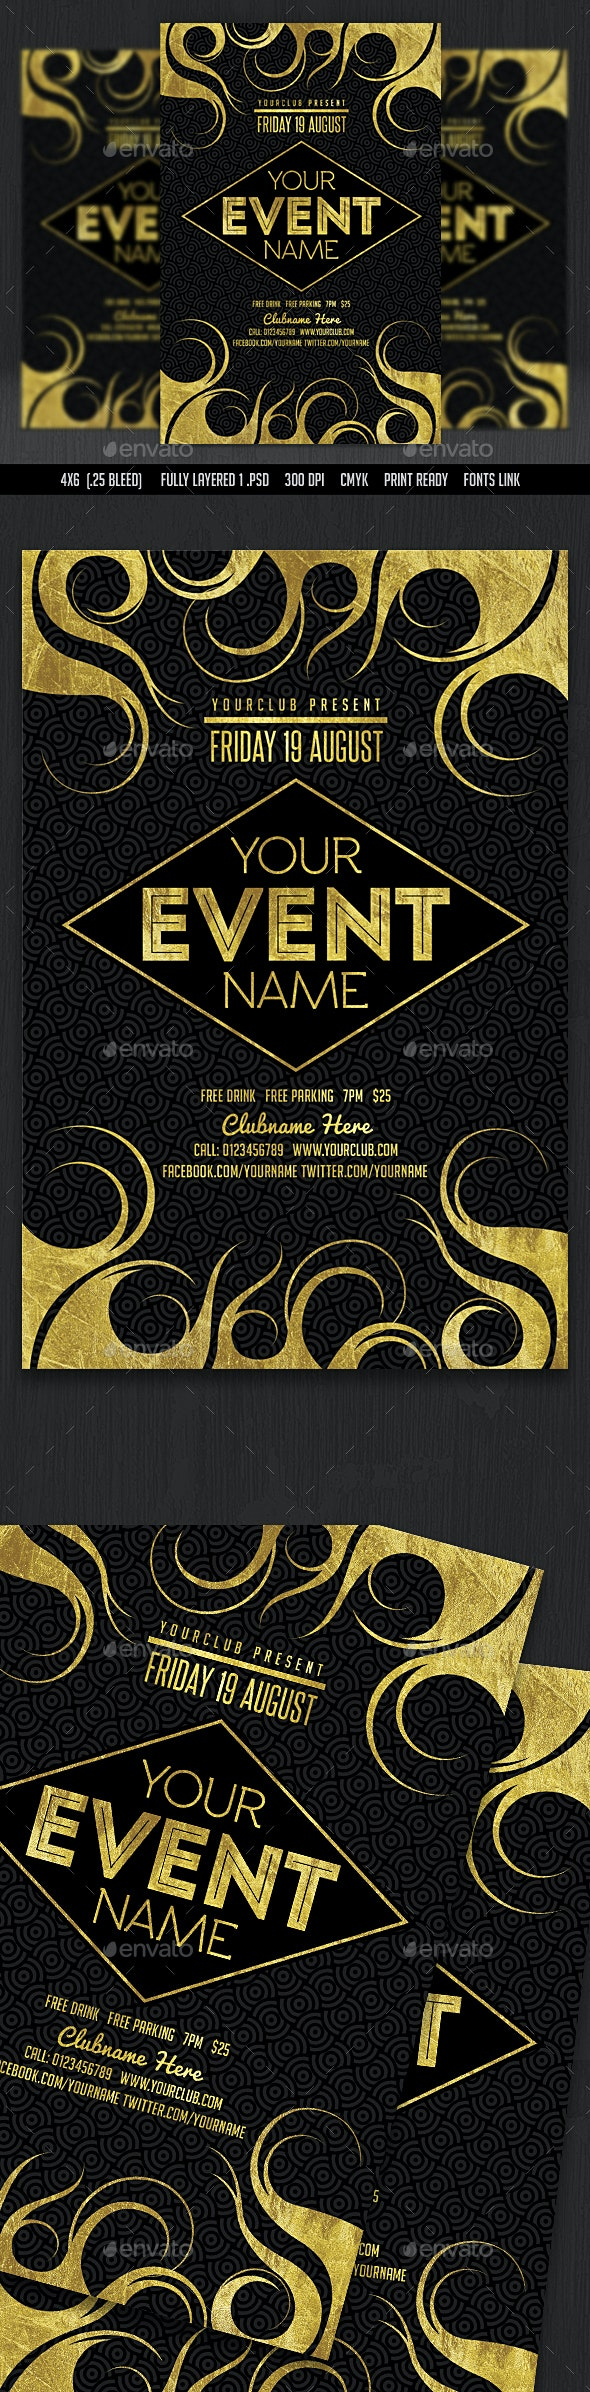 Event Flyer - Events Flyers